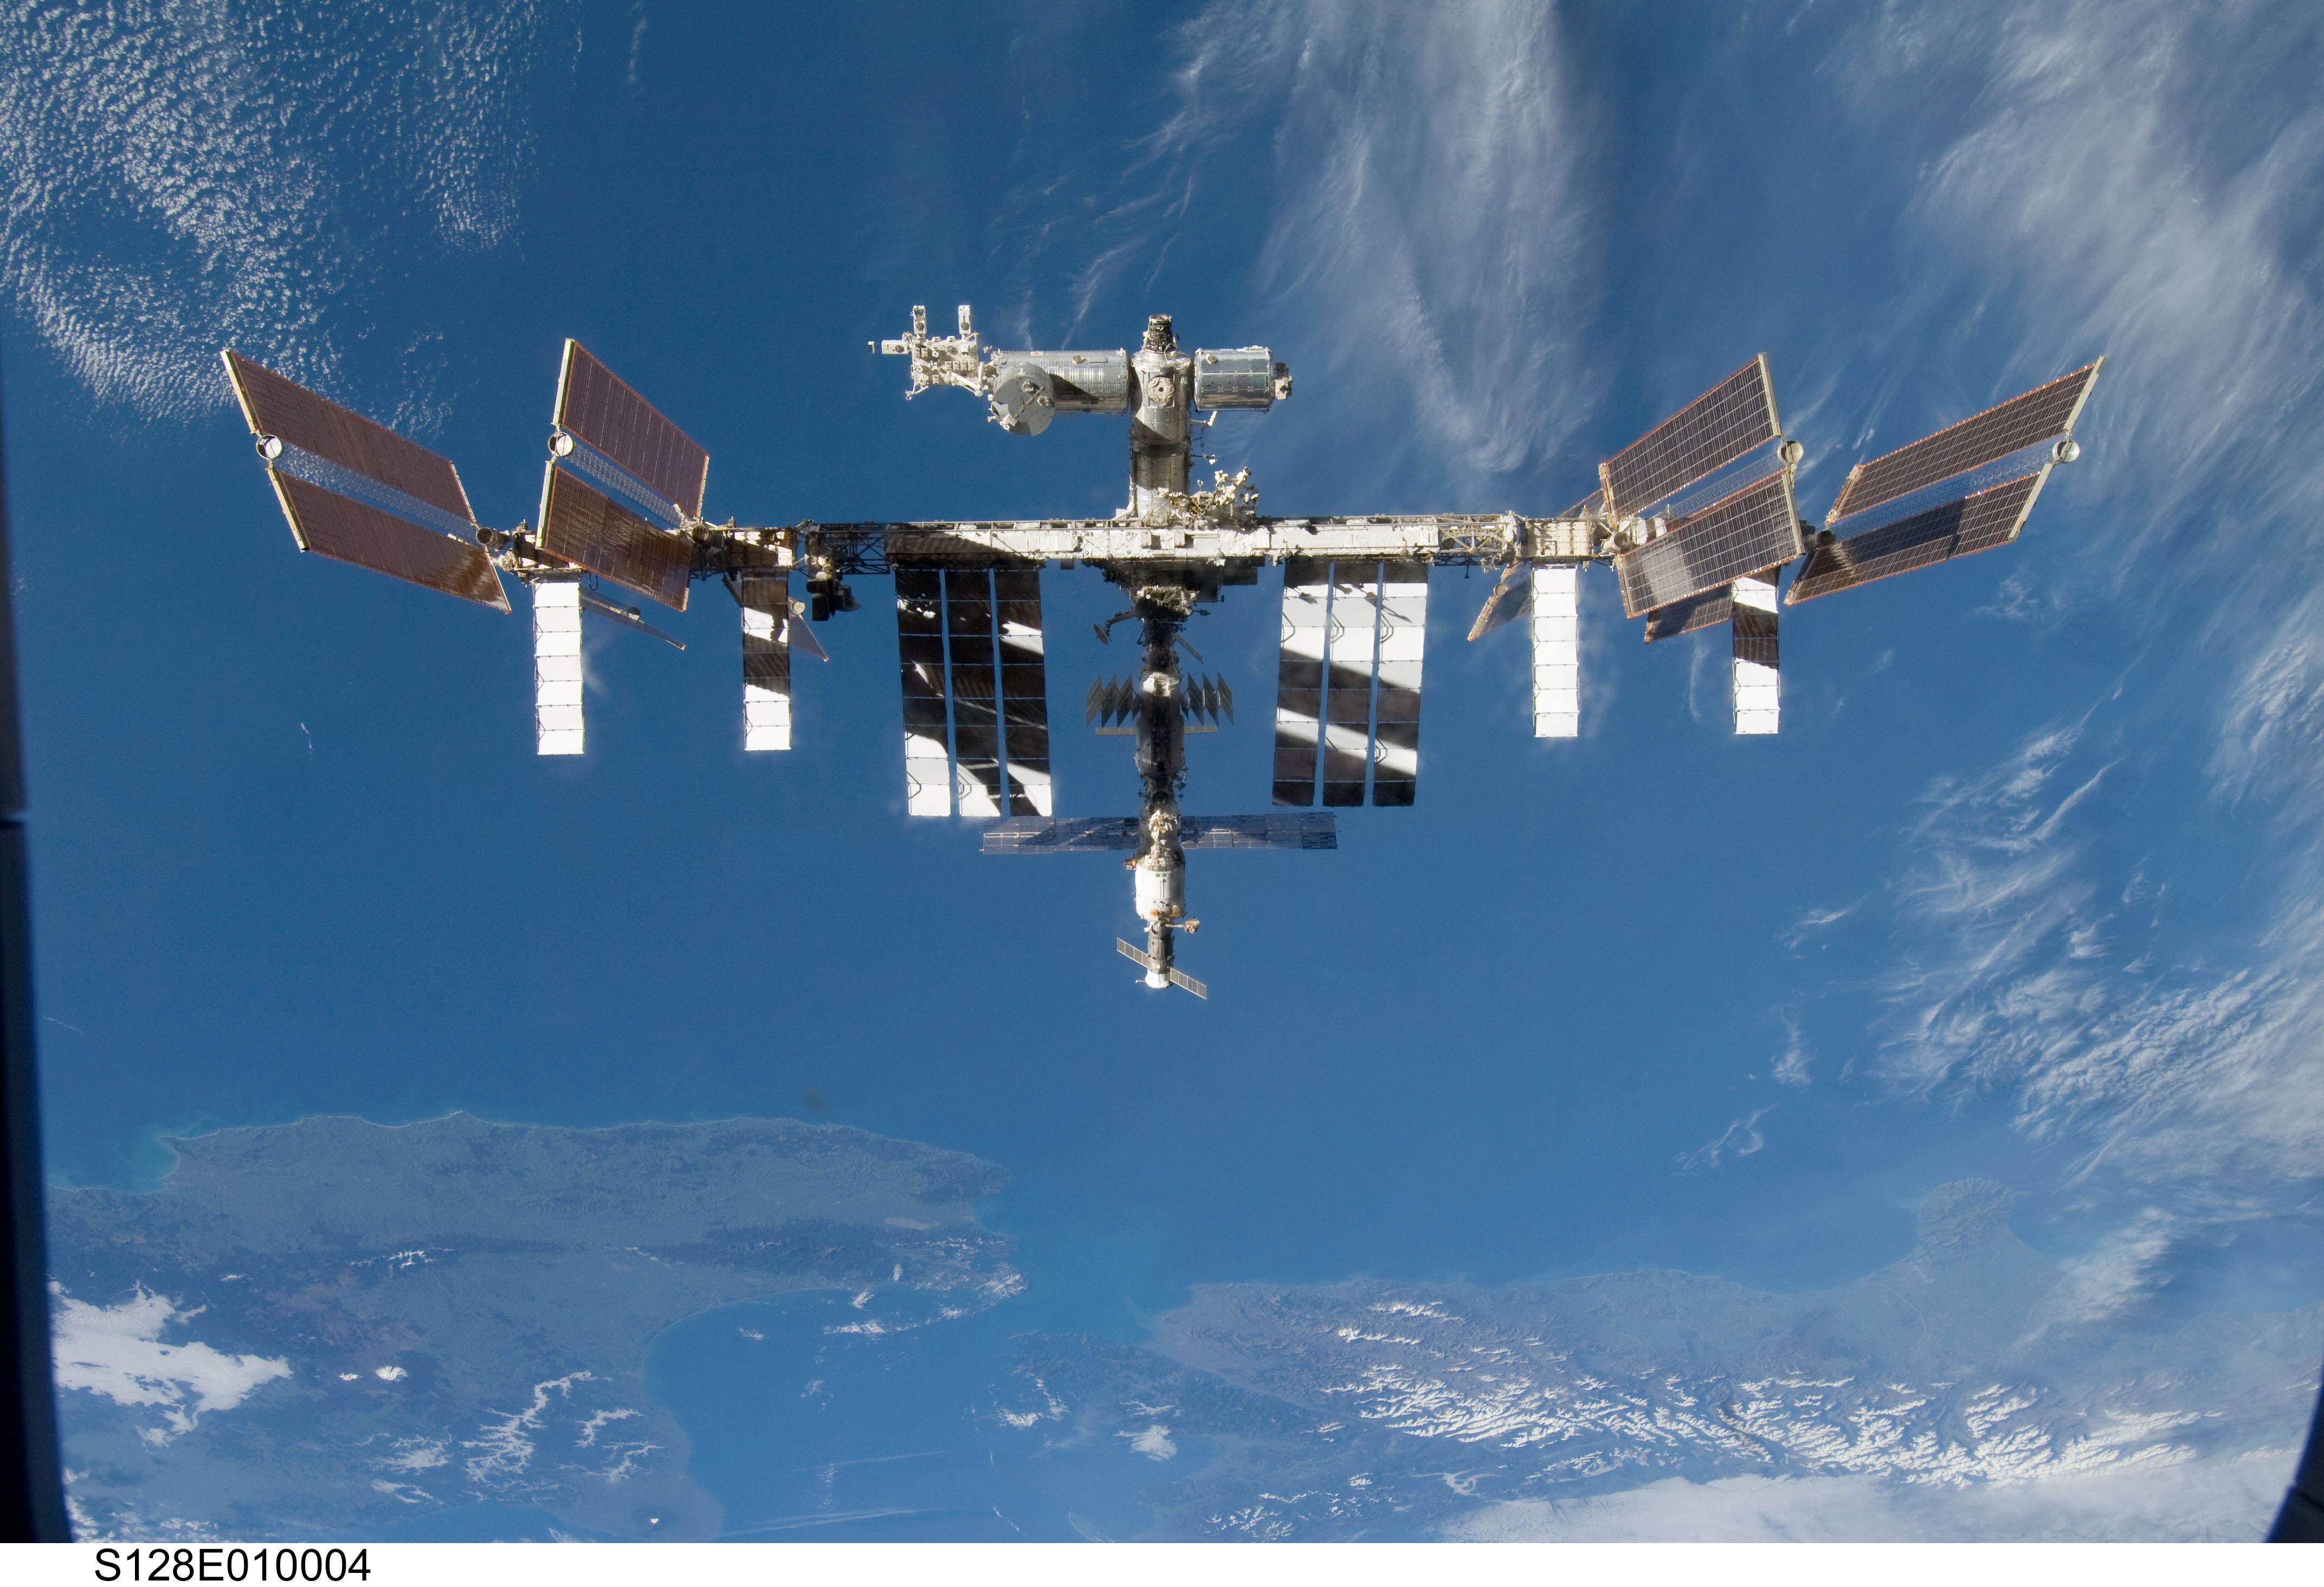 ISS image from APOD